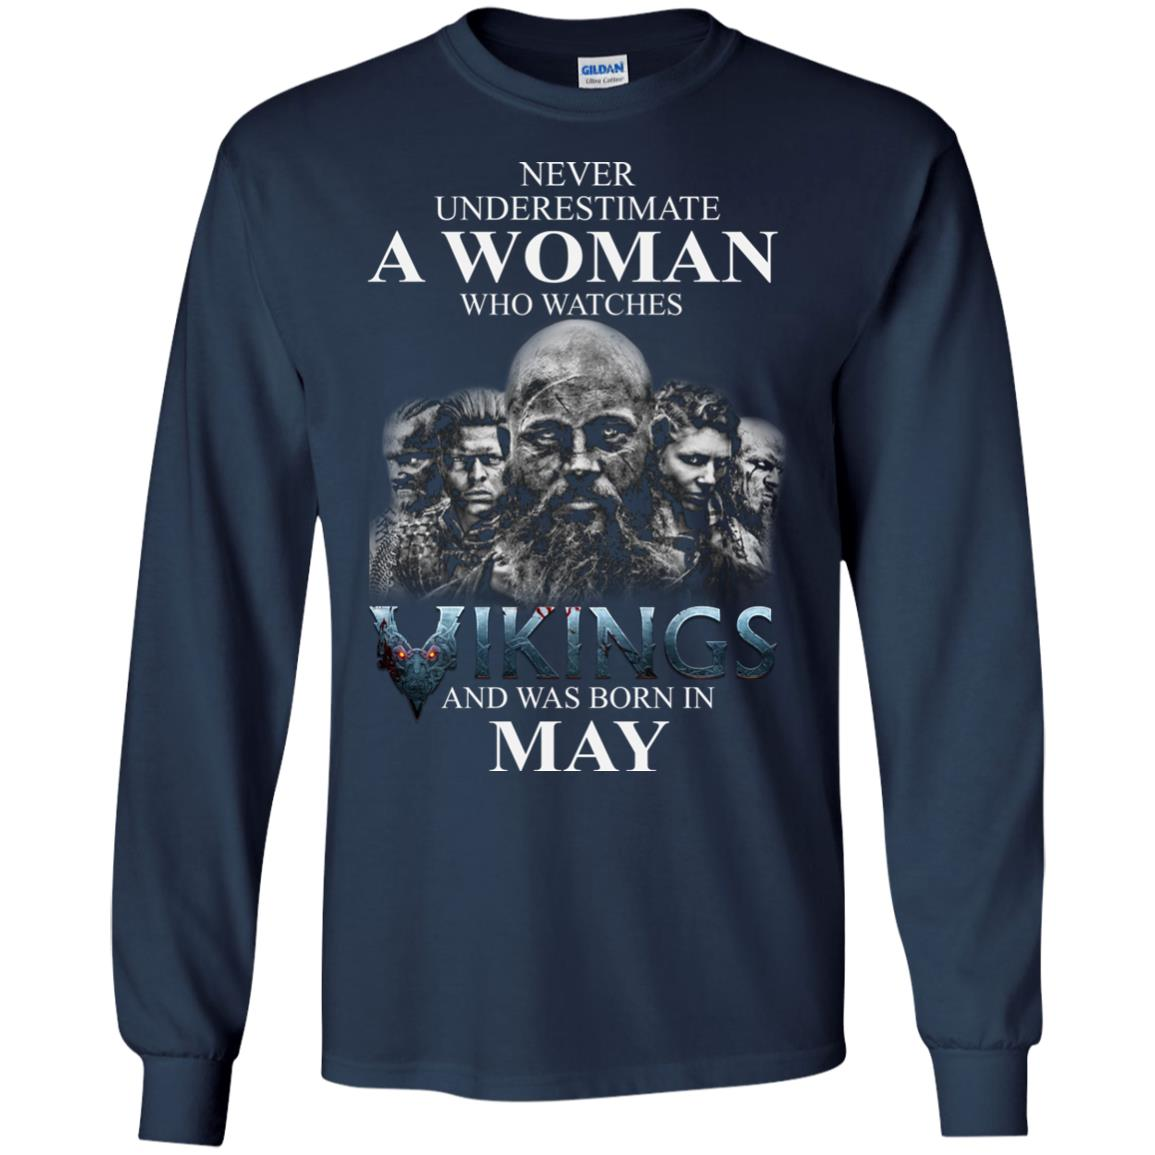 image 1306 - Never Underestimate A woman who watches Vikings and was born in May shirt